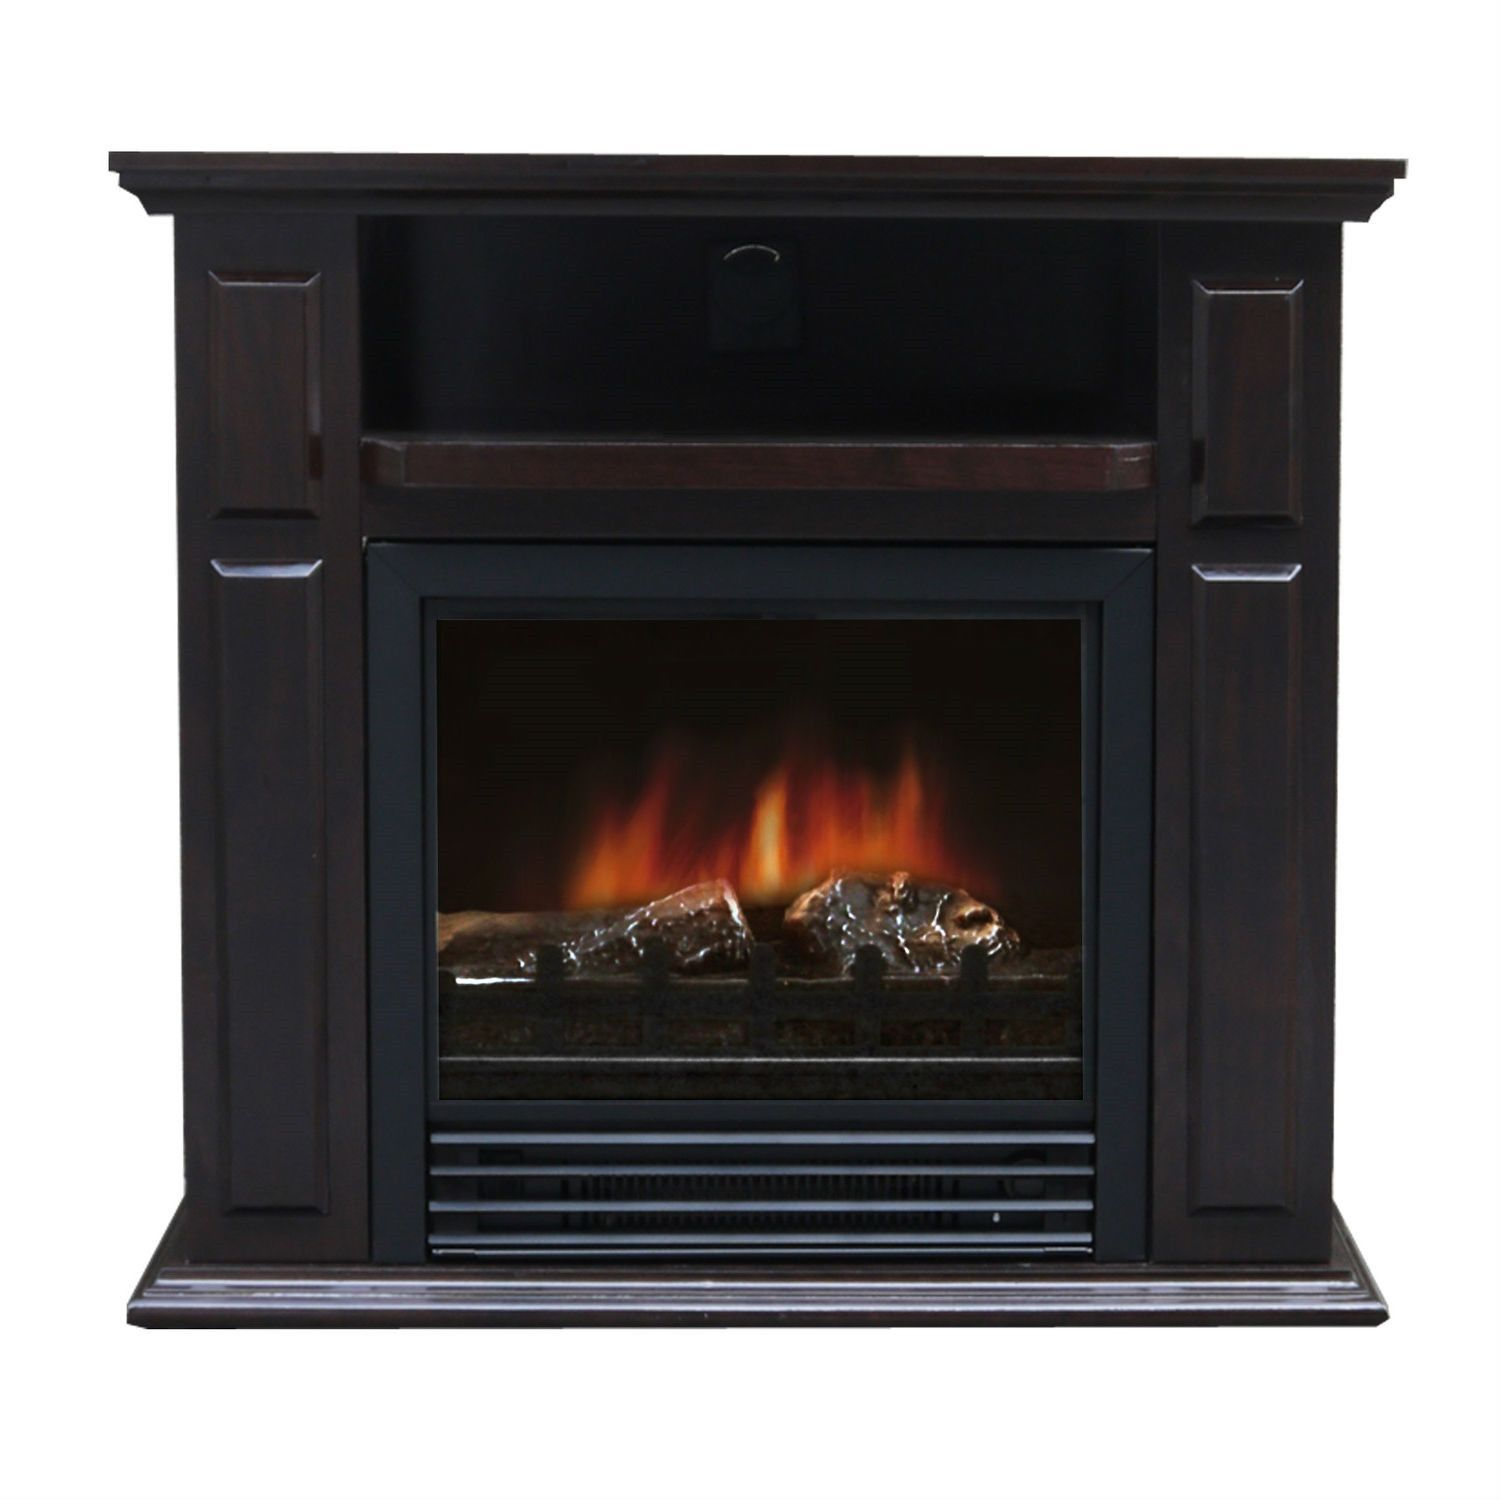 electric fireplace space heater with realistic flame fireplace